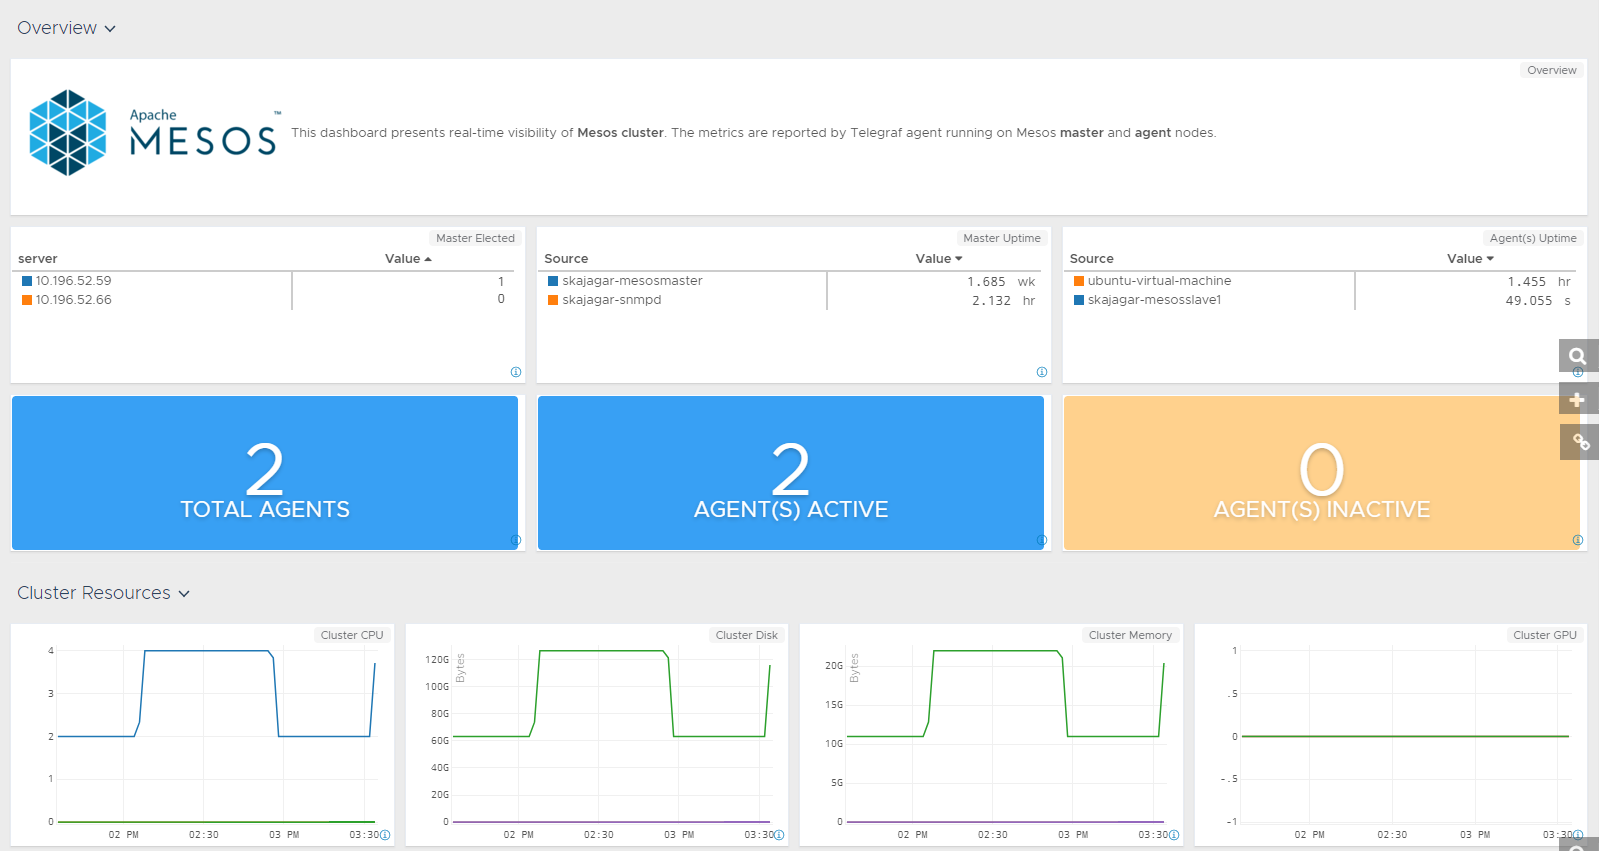 images/mesos_dashboard.png